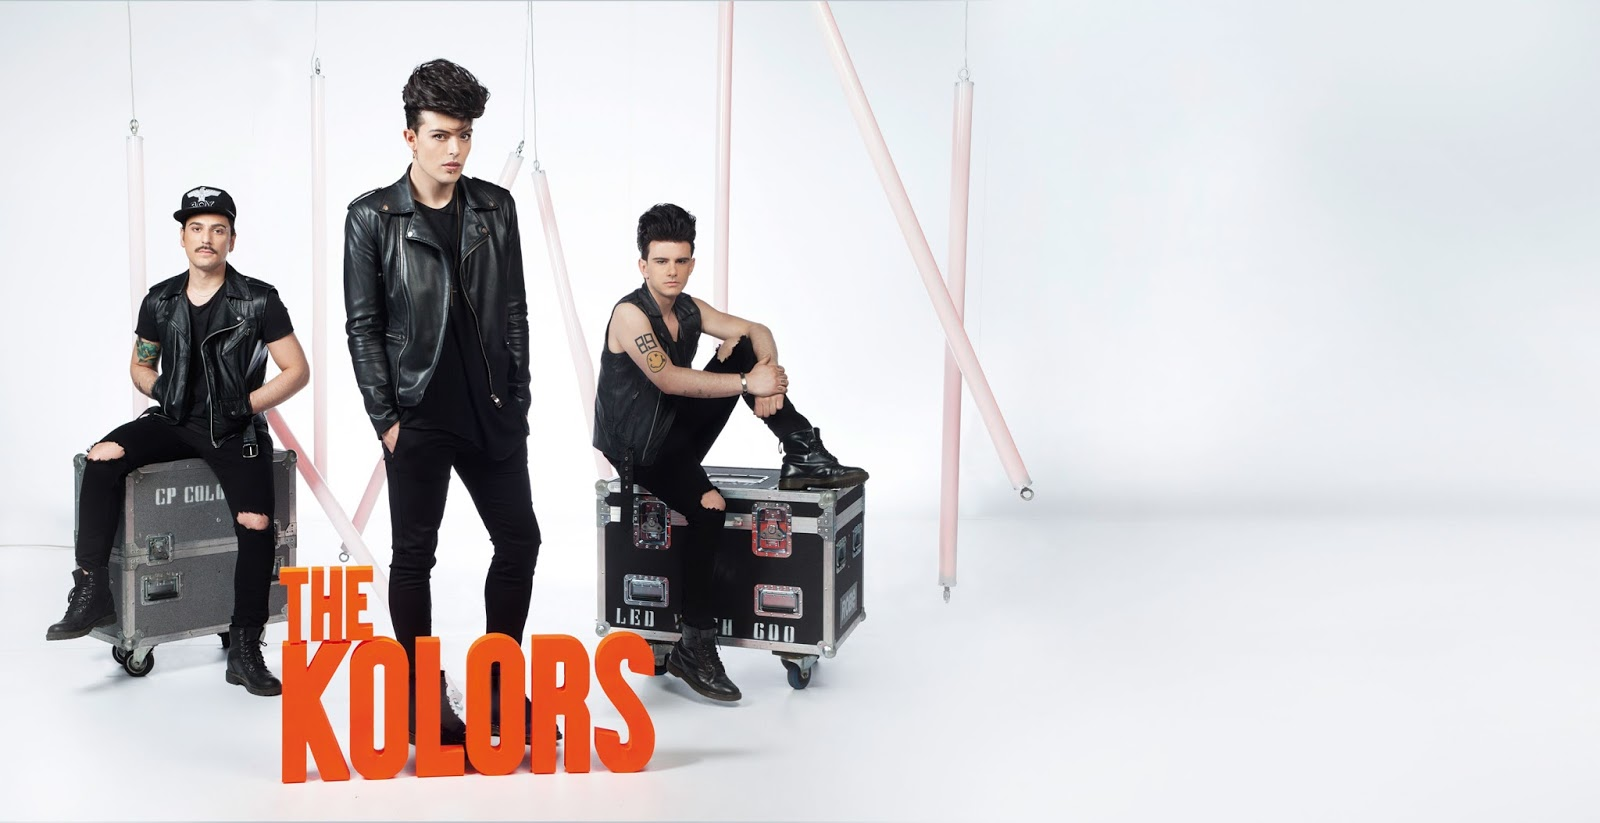 Me Minus You - The Kolors: testo, video e traduzione